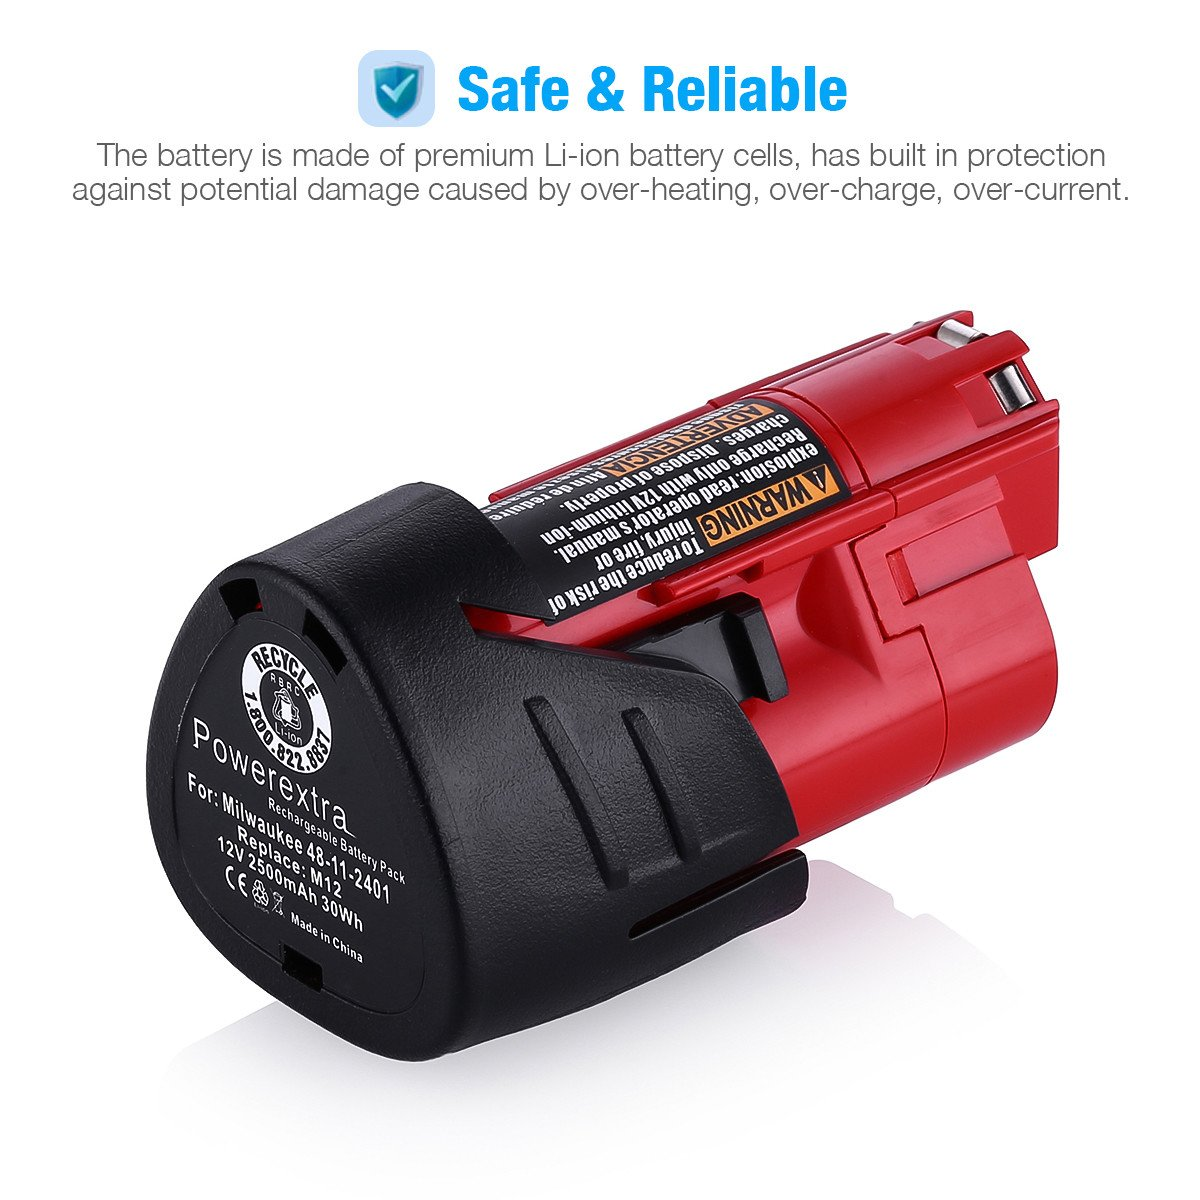 Powerextra 2 Pack 12V 2500mAh Lithium-ion Replacement Battery Compatible with Milwaukee M12 Milwaukee 48-11-2411 REDLITHIUM 12-Volt Cordless Milwaukee Tools Milwaukee 12V Battery Lithium-ion by Powerextra (Image #5)